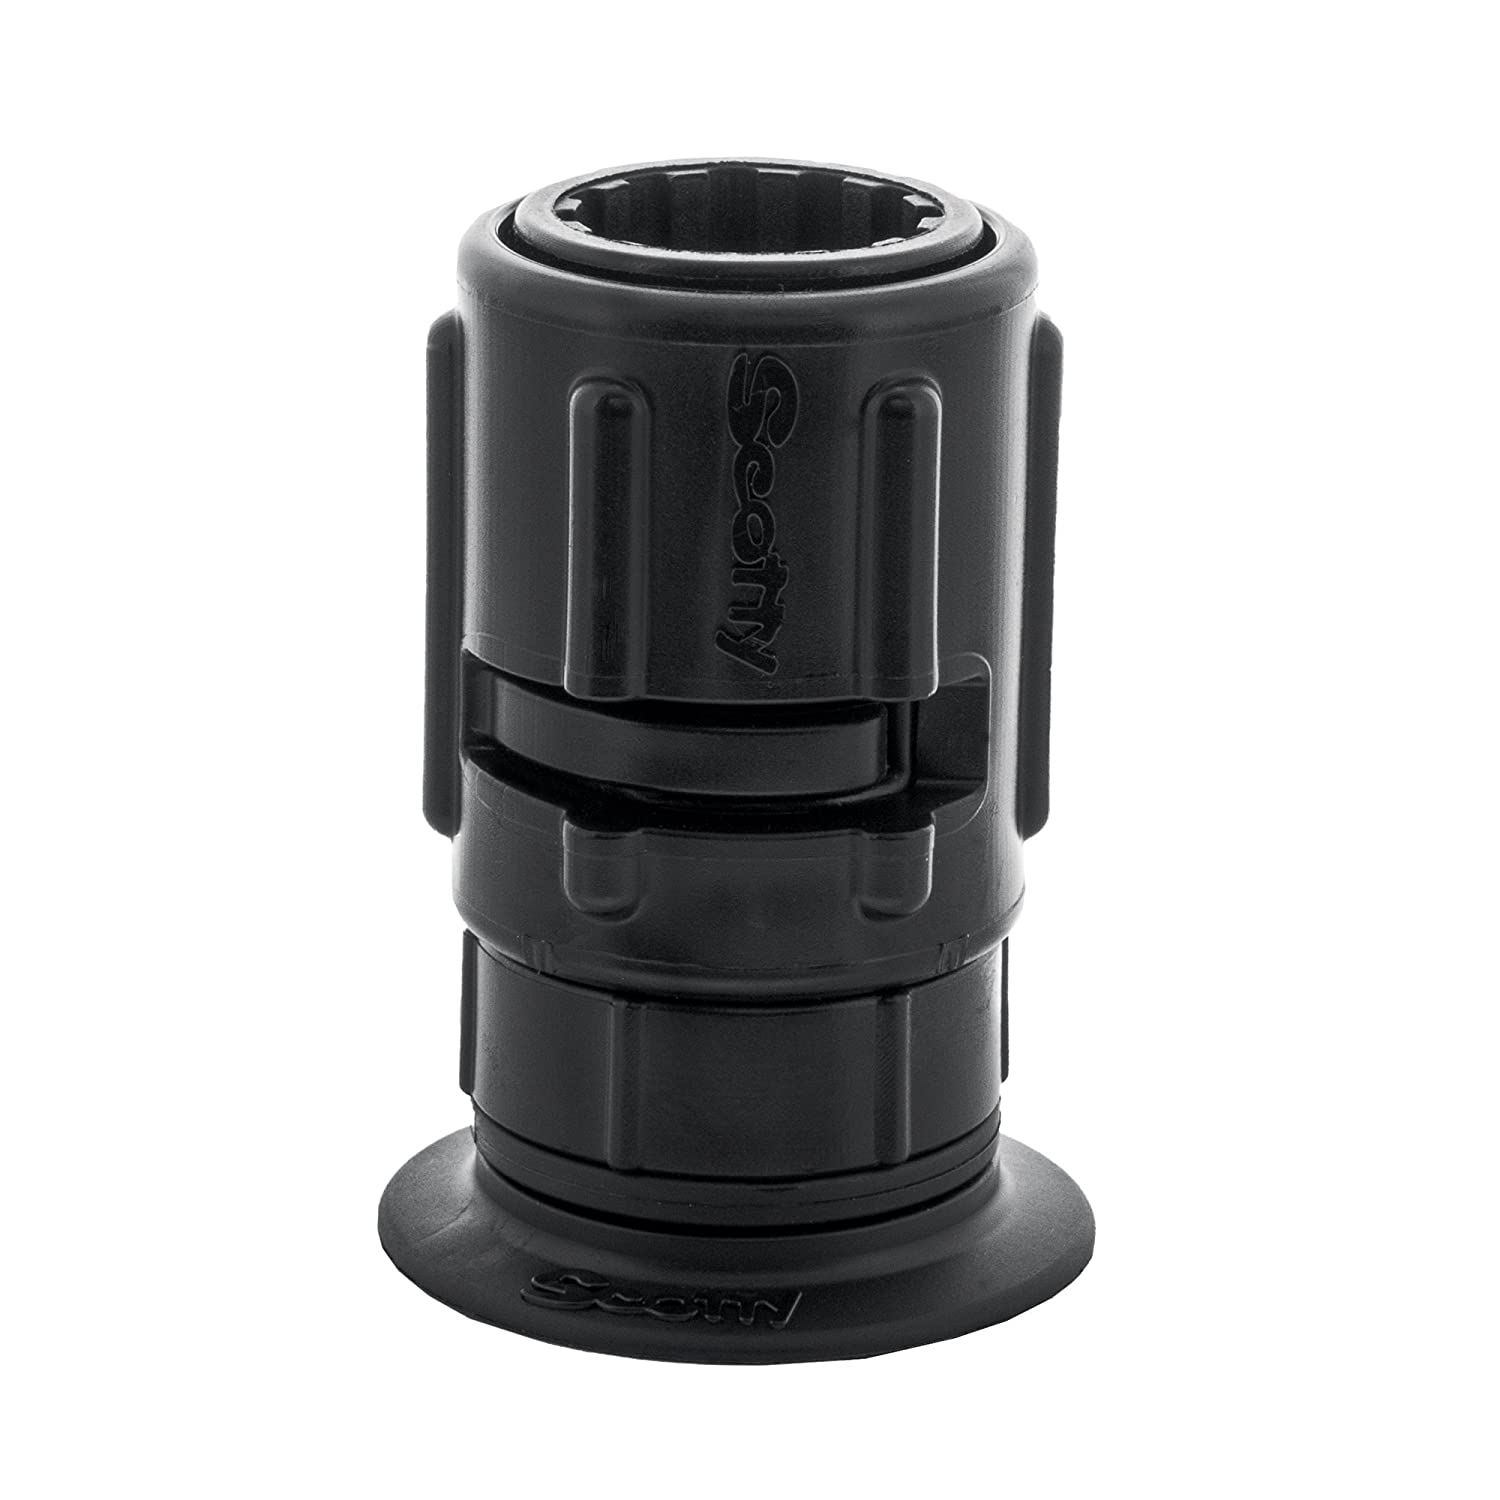 Scotty Stick On Accessory Mount with 437 Gear-Head